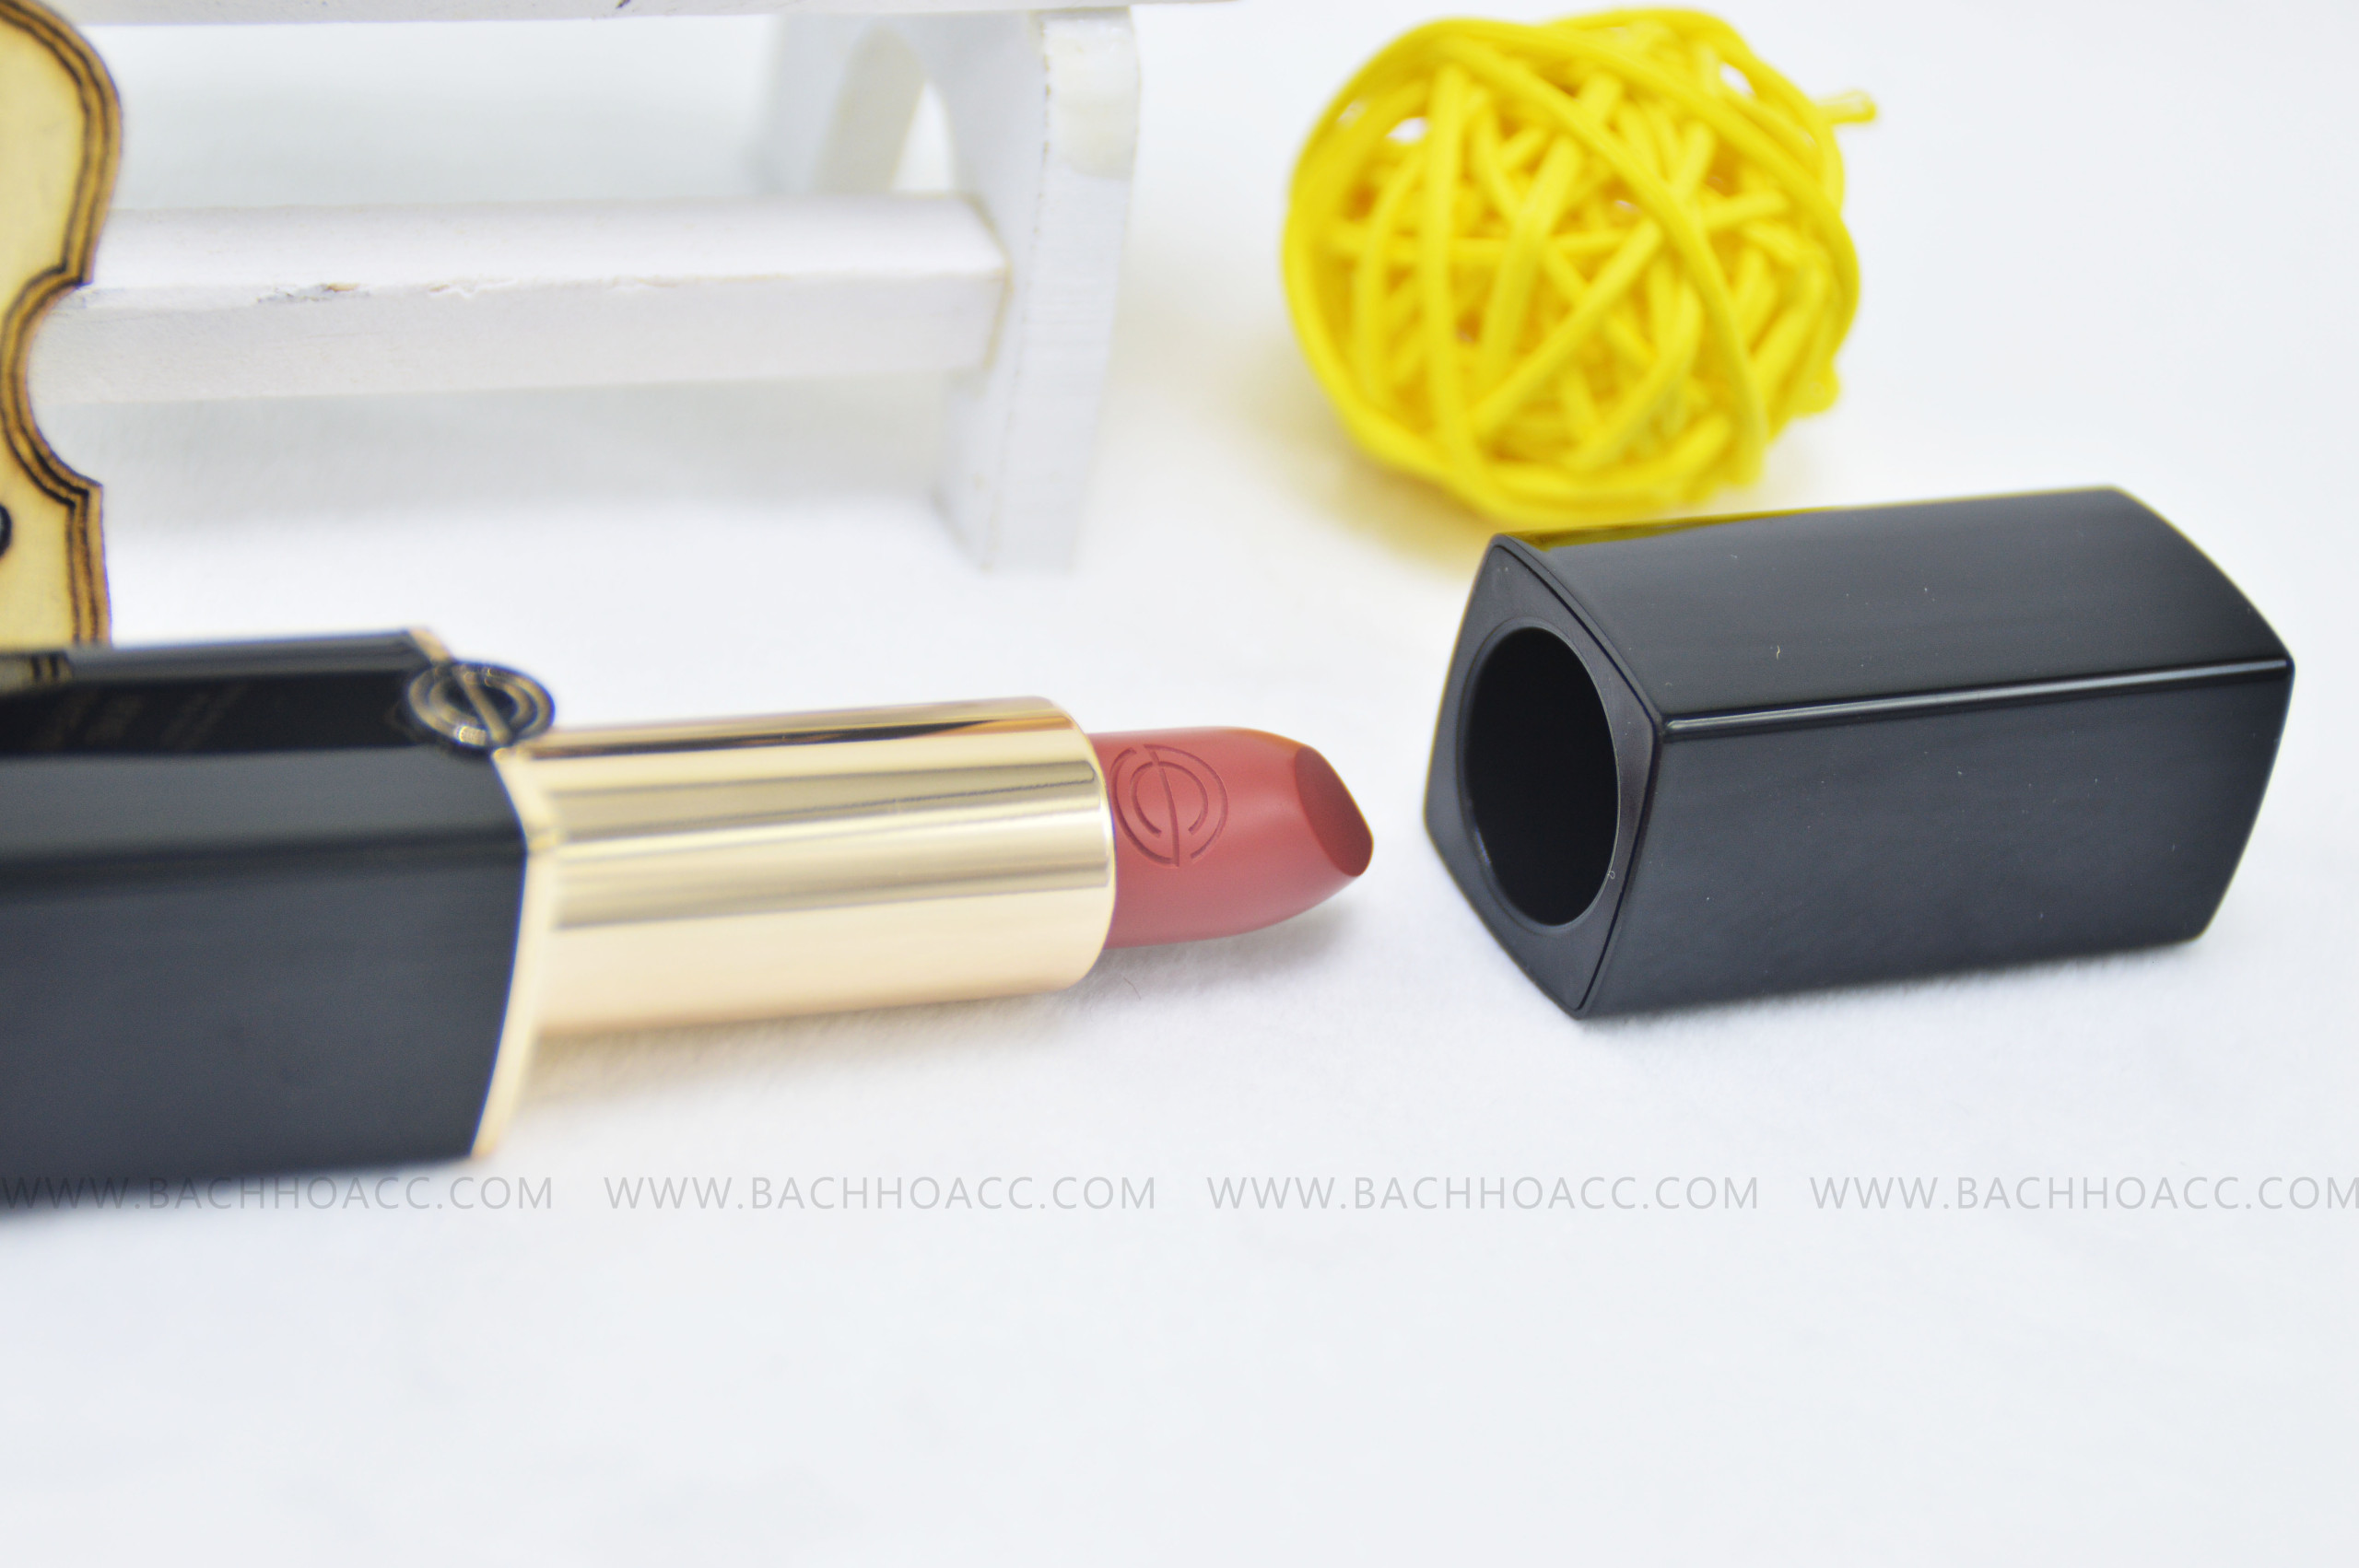 SON THỎI DERMA PURE CLINIC ROUGE PURVELVET MATTE 253 GLAM RED